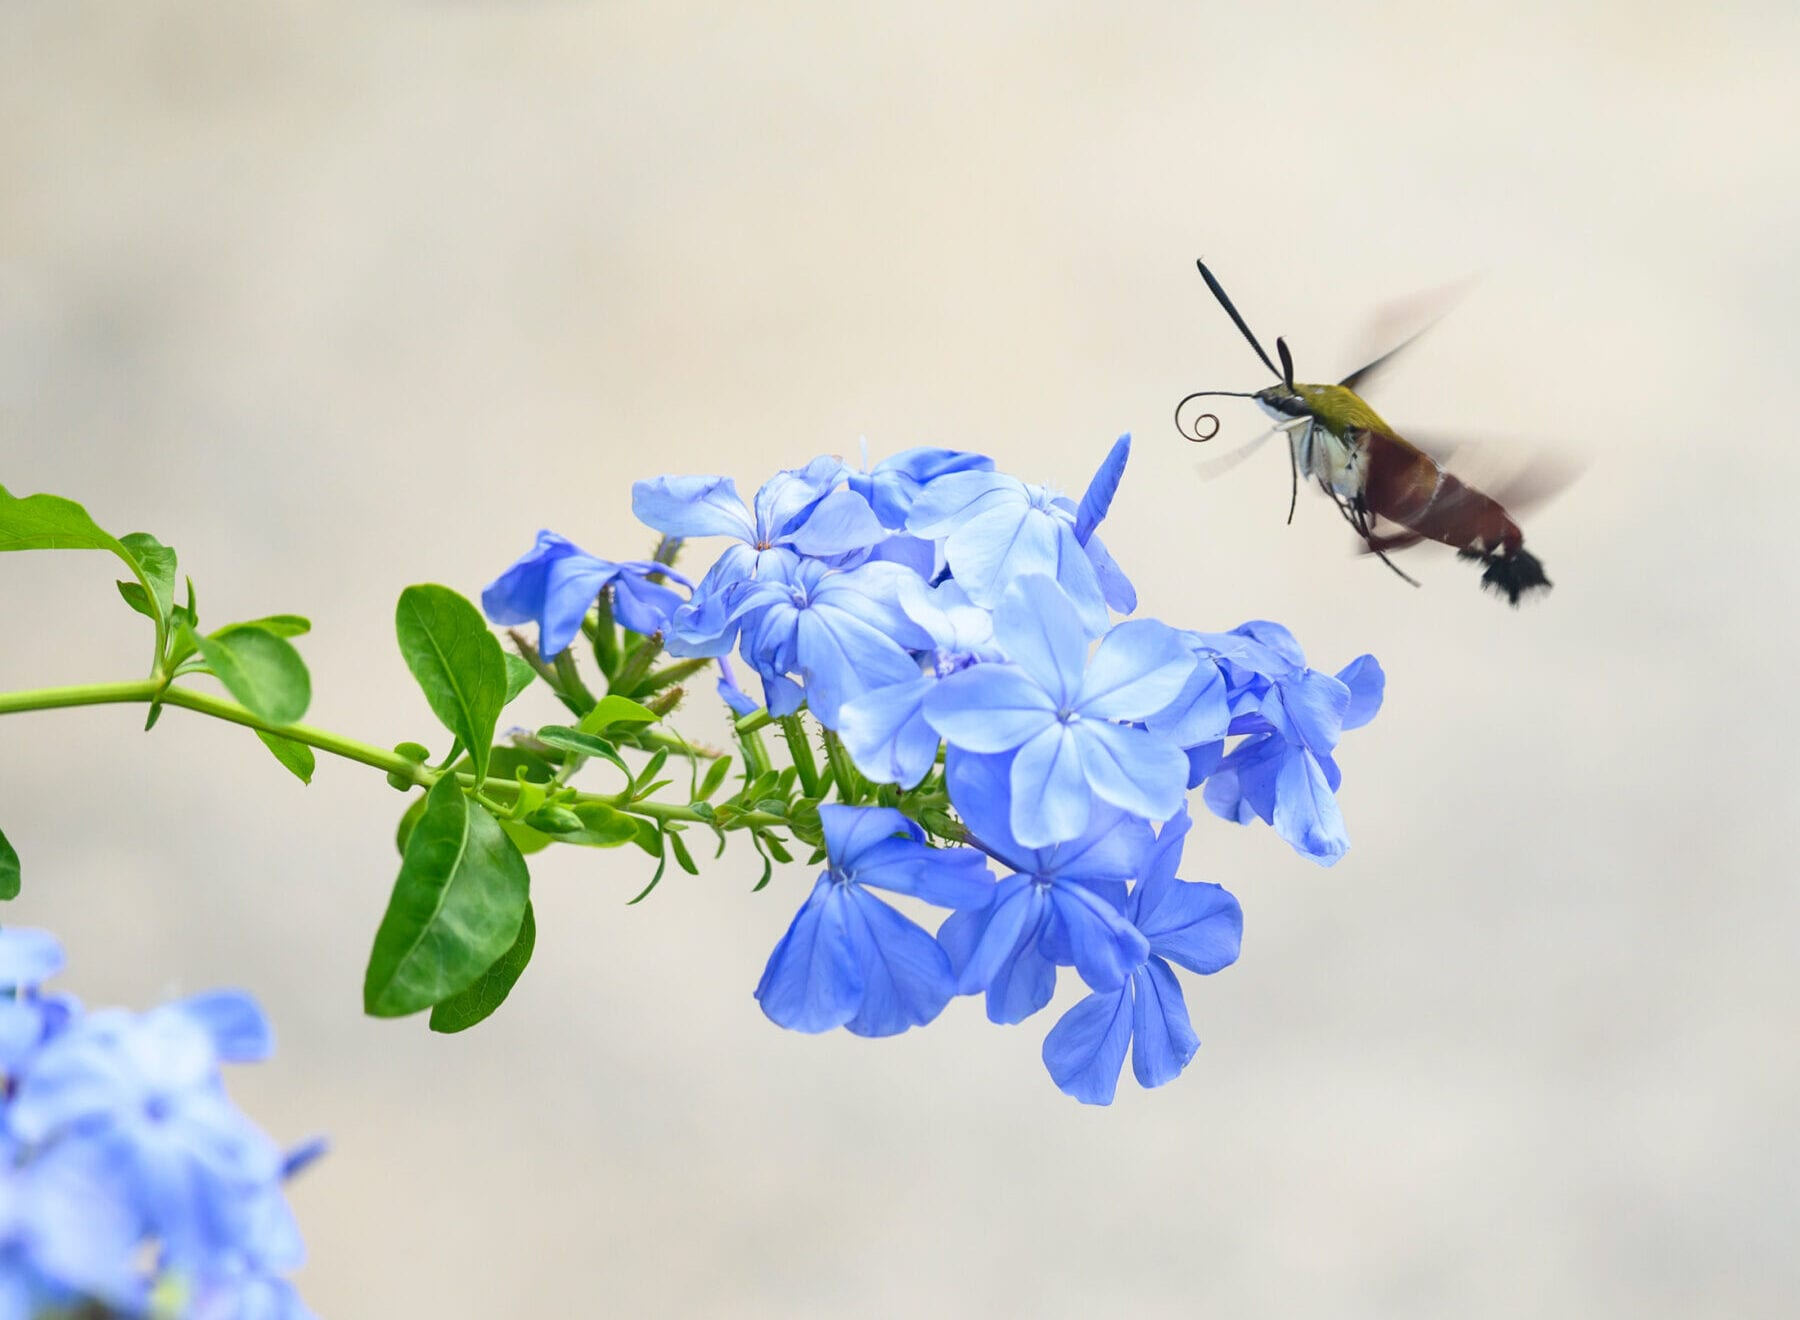 Bees and butterflies aren't the only pollinators. Flies, beetles, moths and other insects also play a key role in helping flowering plants reproduce. Here, a hummingbird hawk moth unfurls its long proboscis to feed. FLORIDA MUSEUM PHOTO BY JEFF GAGE